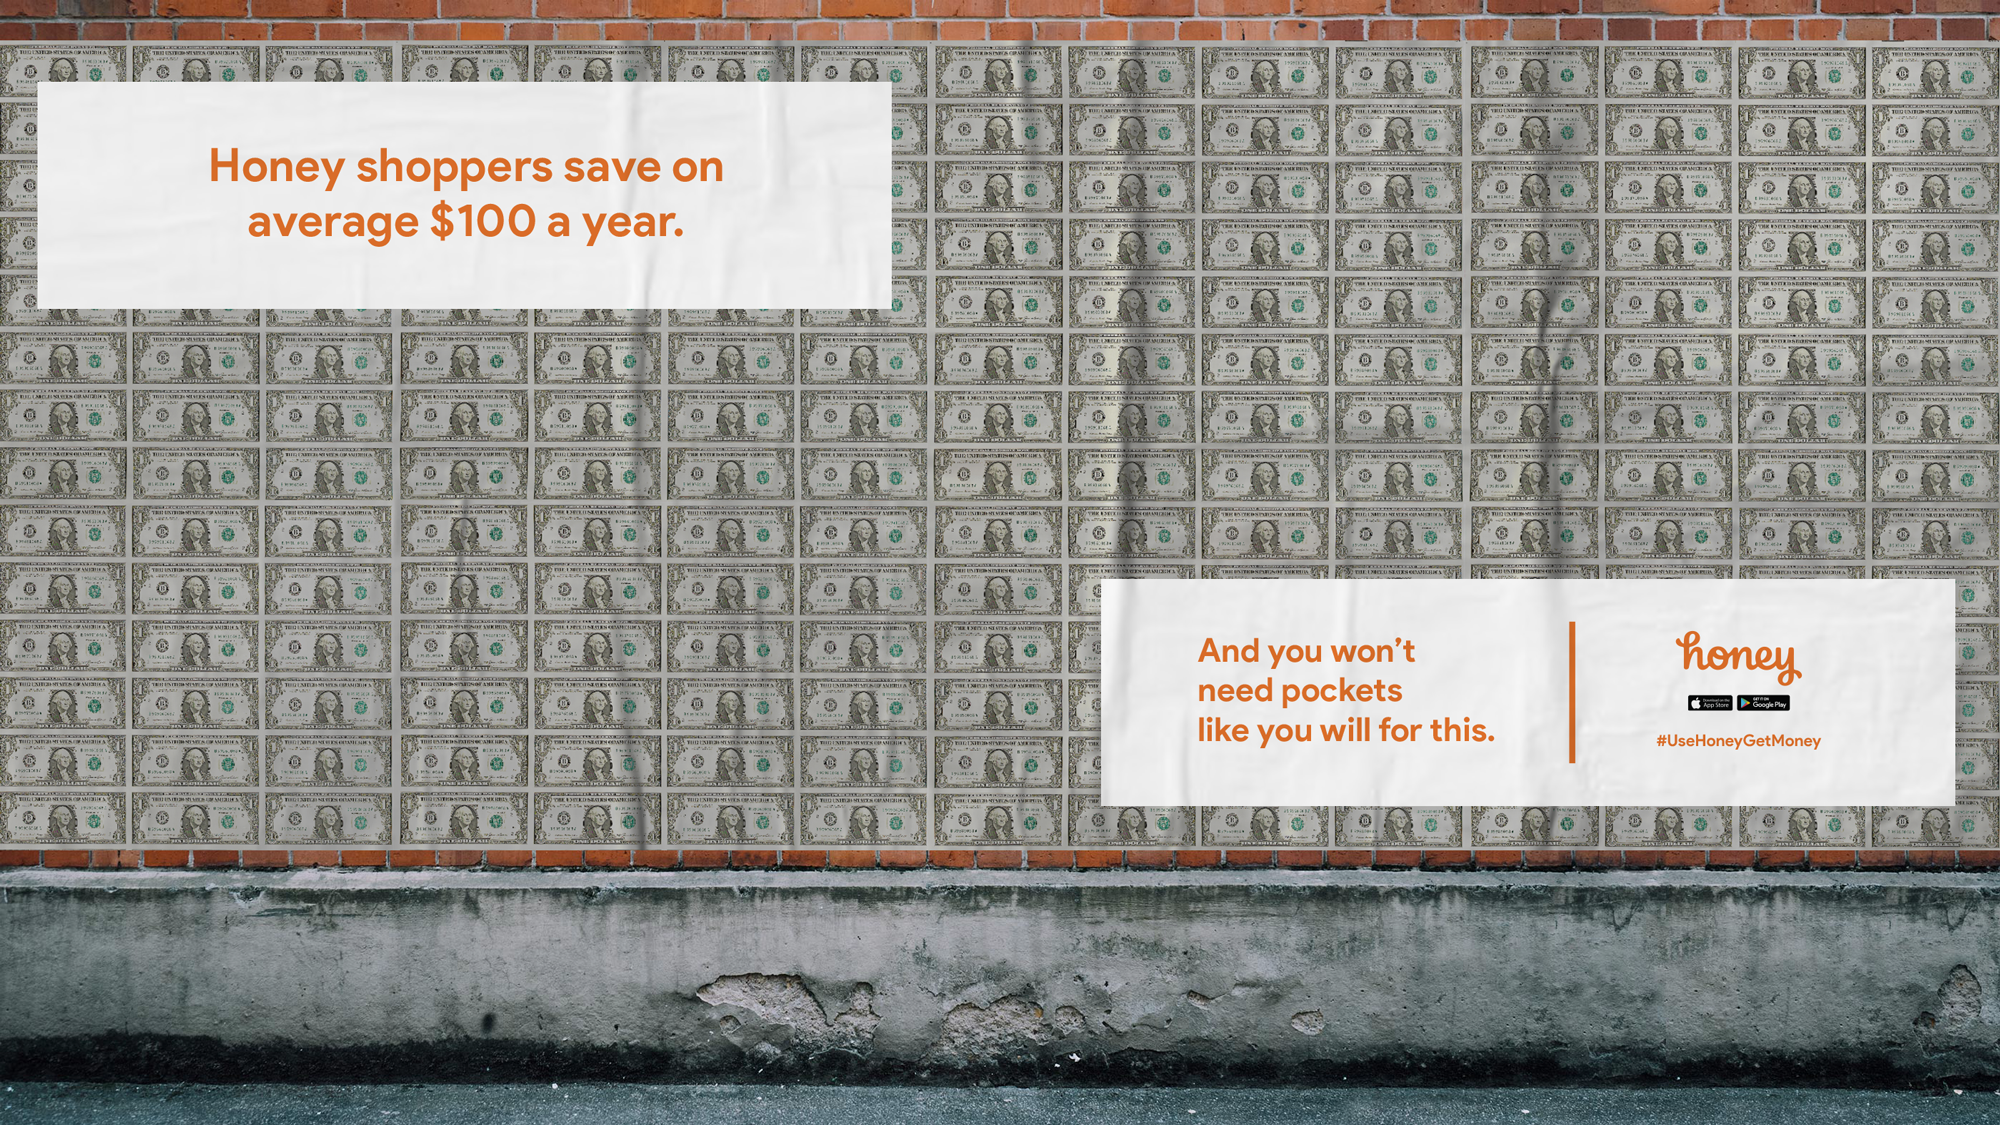 We'll also create a sidewalk-level billboard wallpaper with real cash.